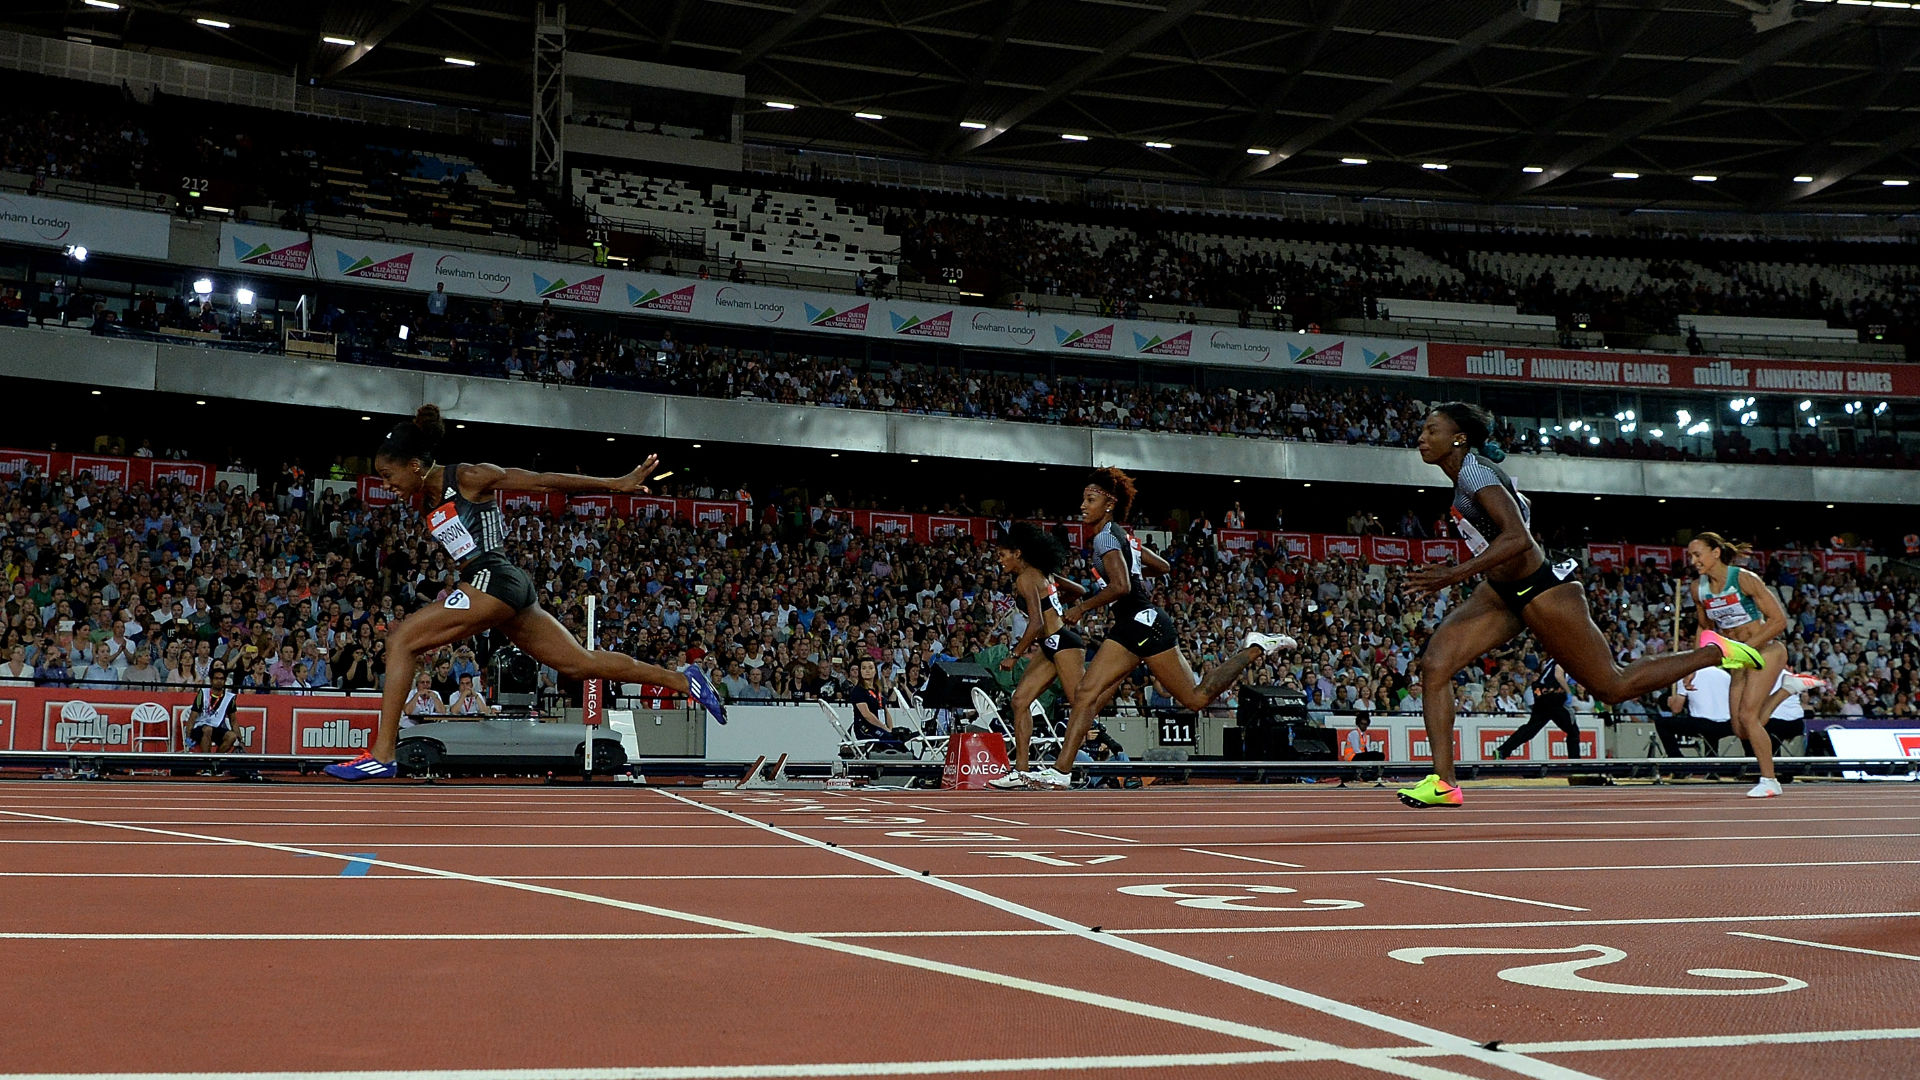 Kendra Harrison wins the 100m hurdles at the Muller Anniversary Games at the London Stadium, Queen Elizabeth Olympic Park. Image courtesy of Getty Images / British Athletics